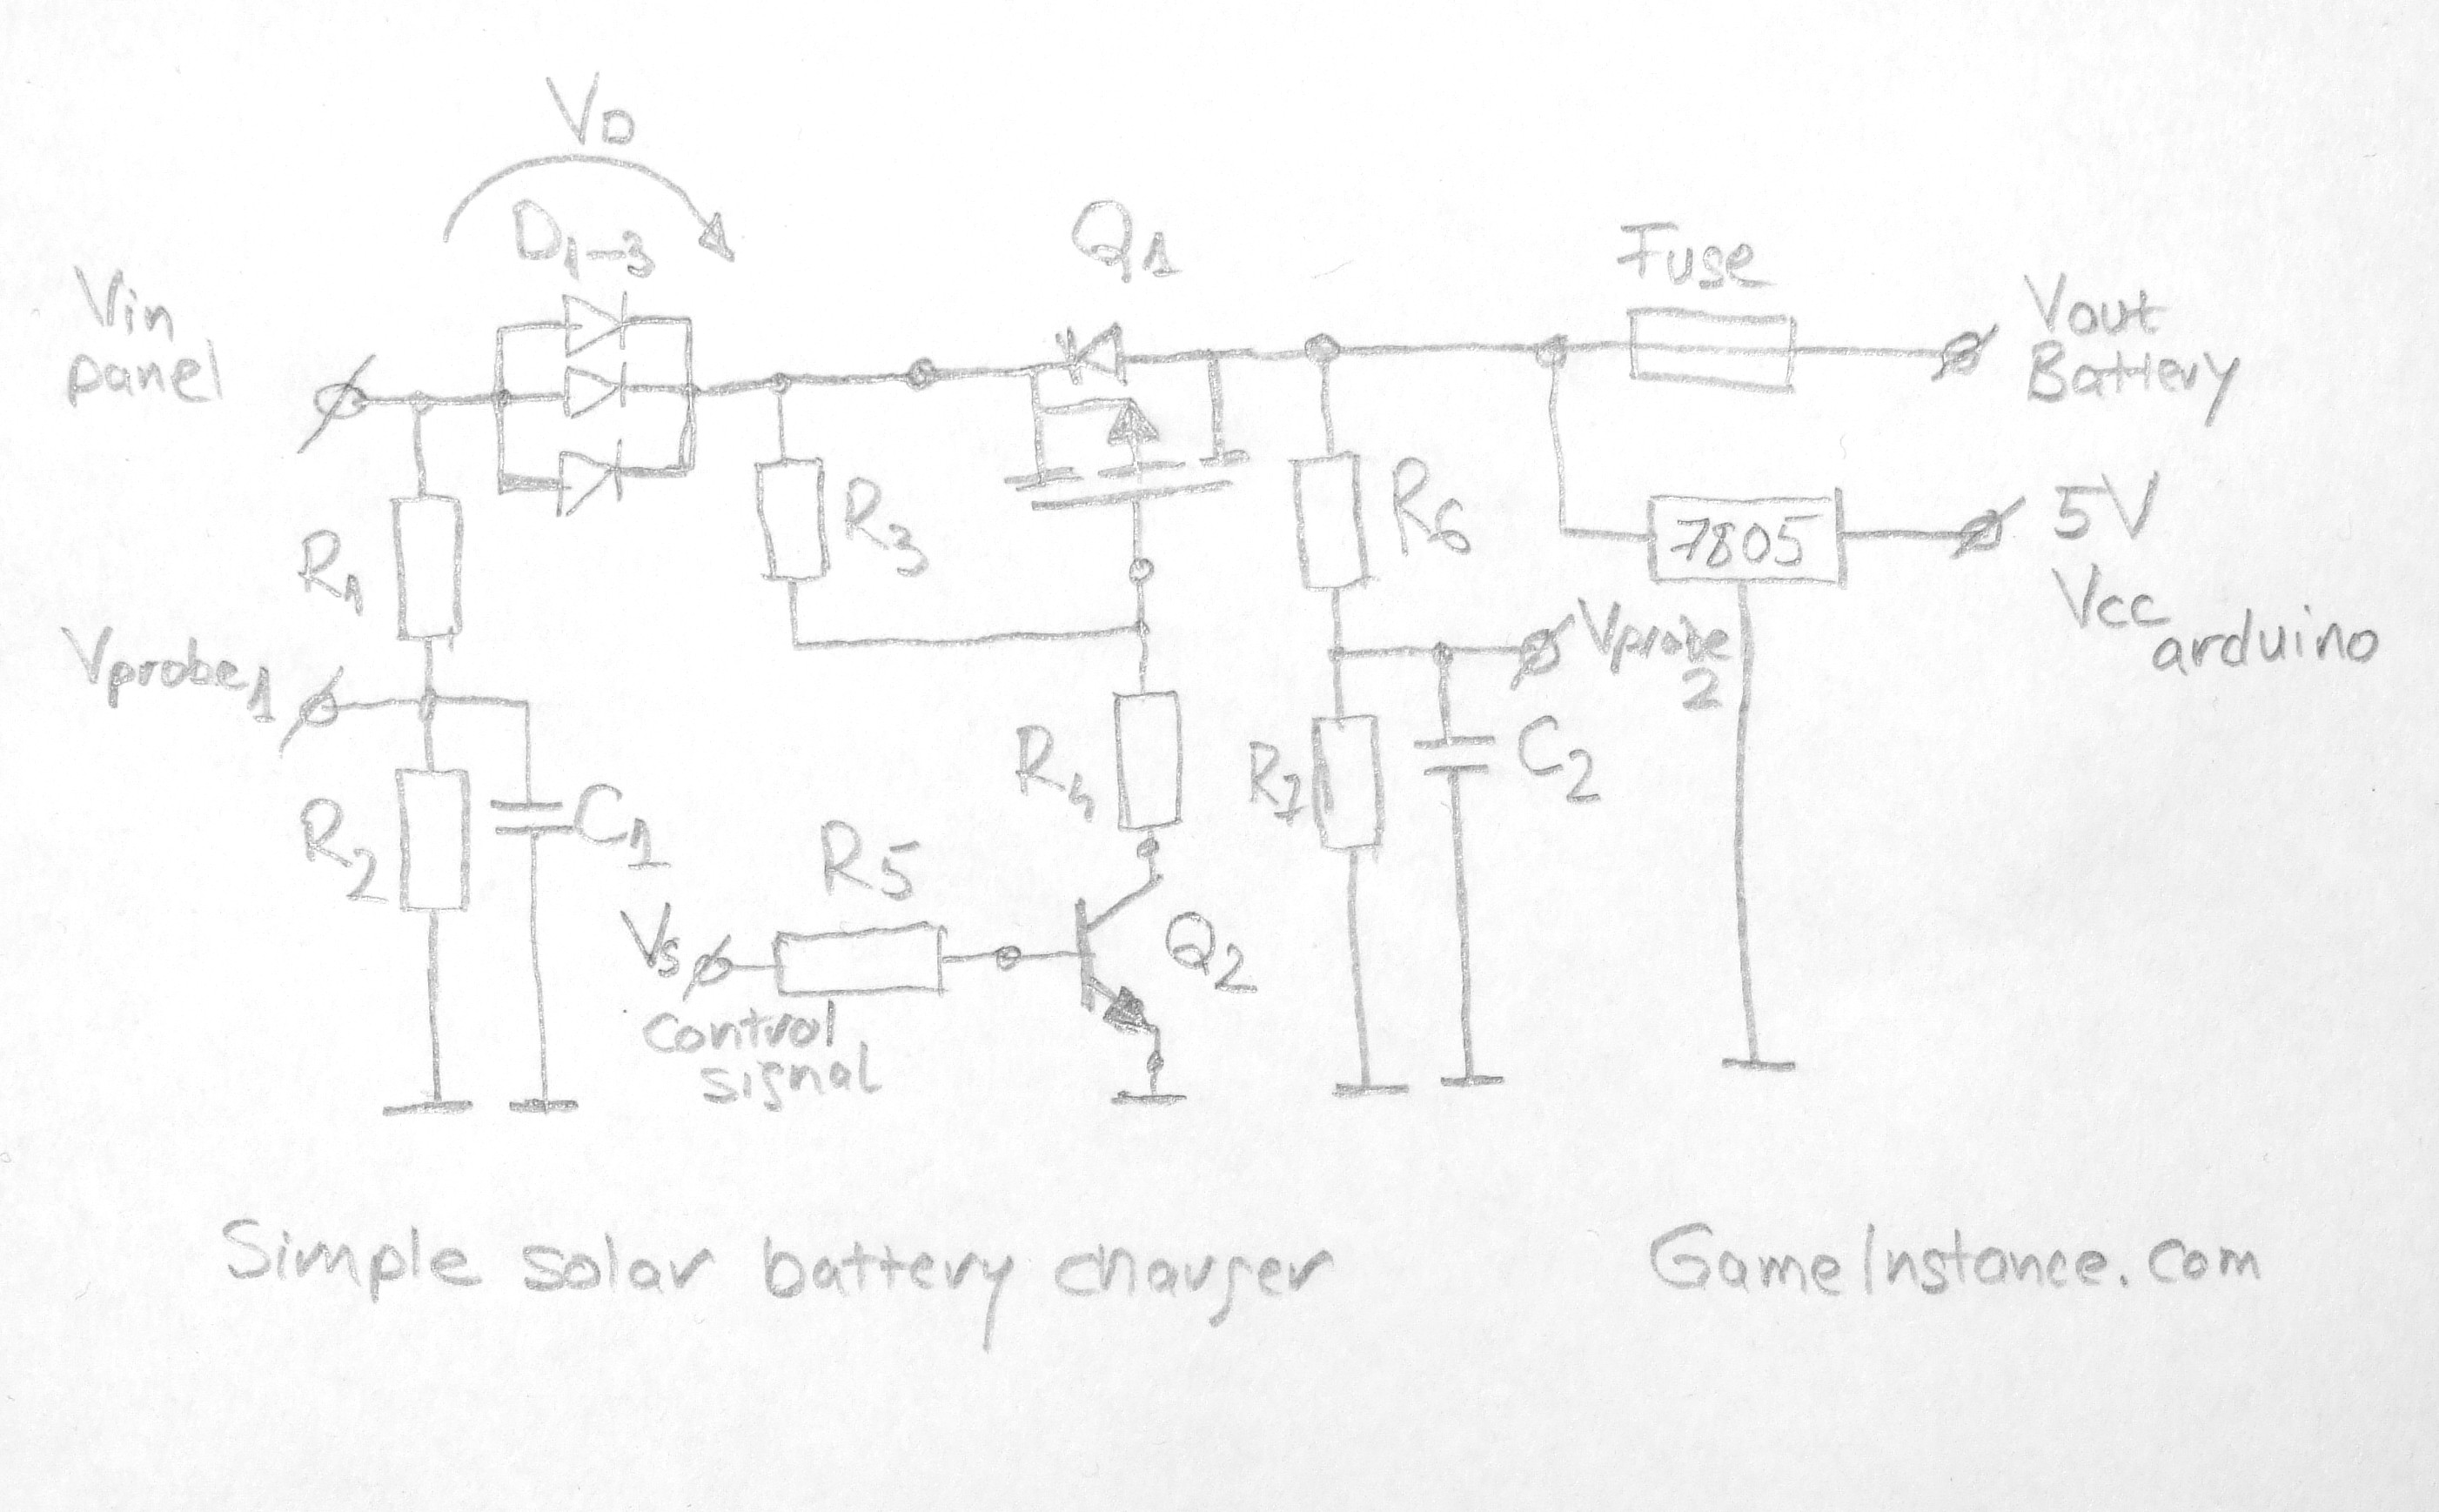 gameinstance com - simple solar battery charger